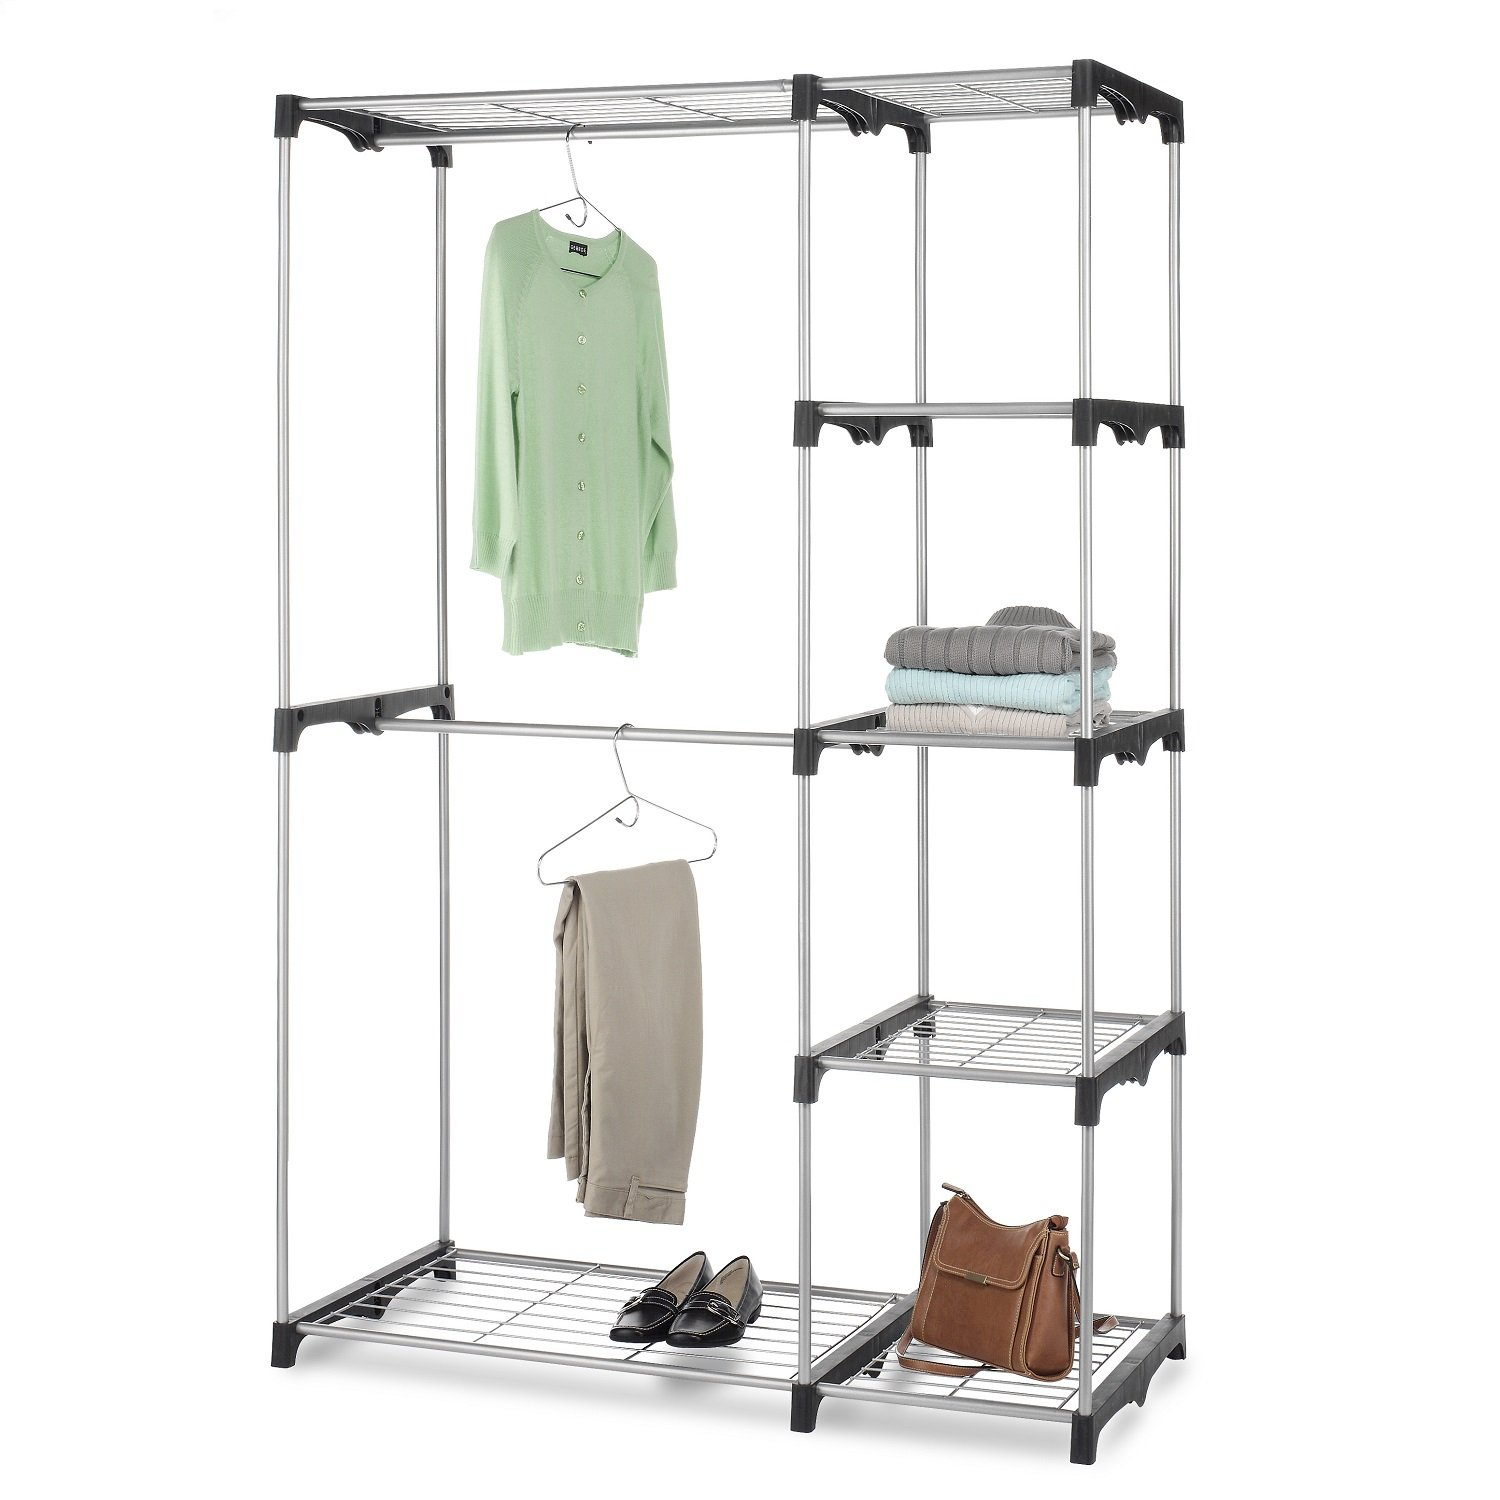 Whitmor Double Rod Freestanding Closet Heavy Duty Storage Organizer by Whitmor